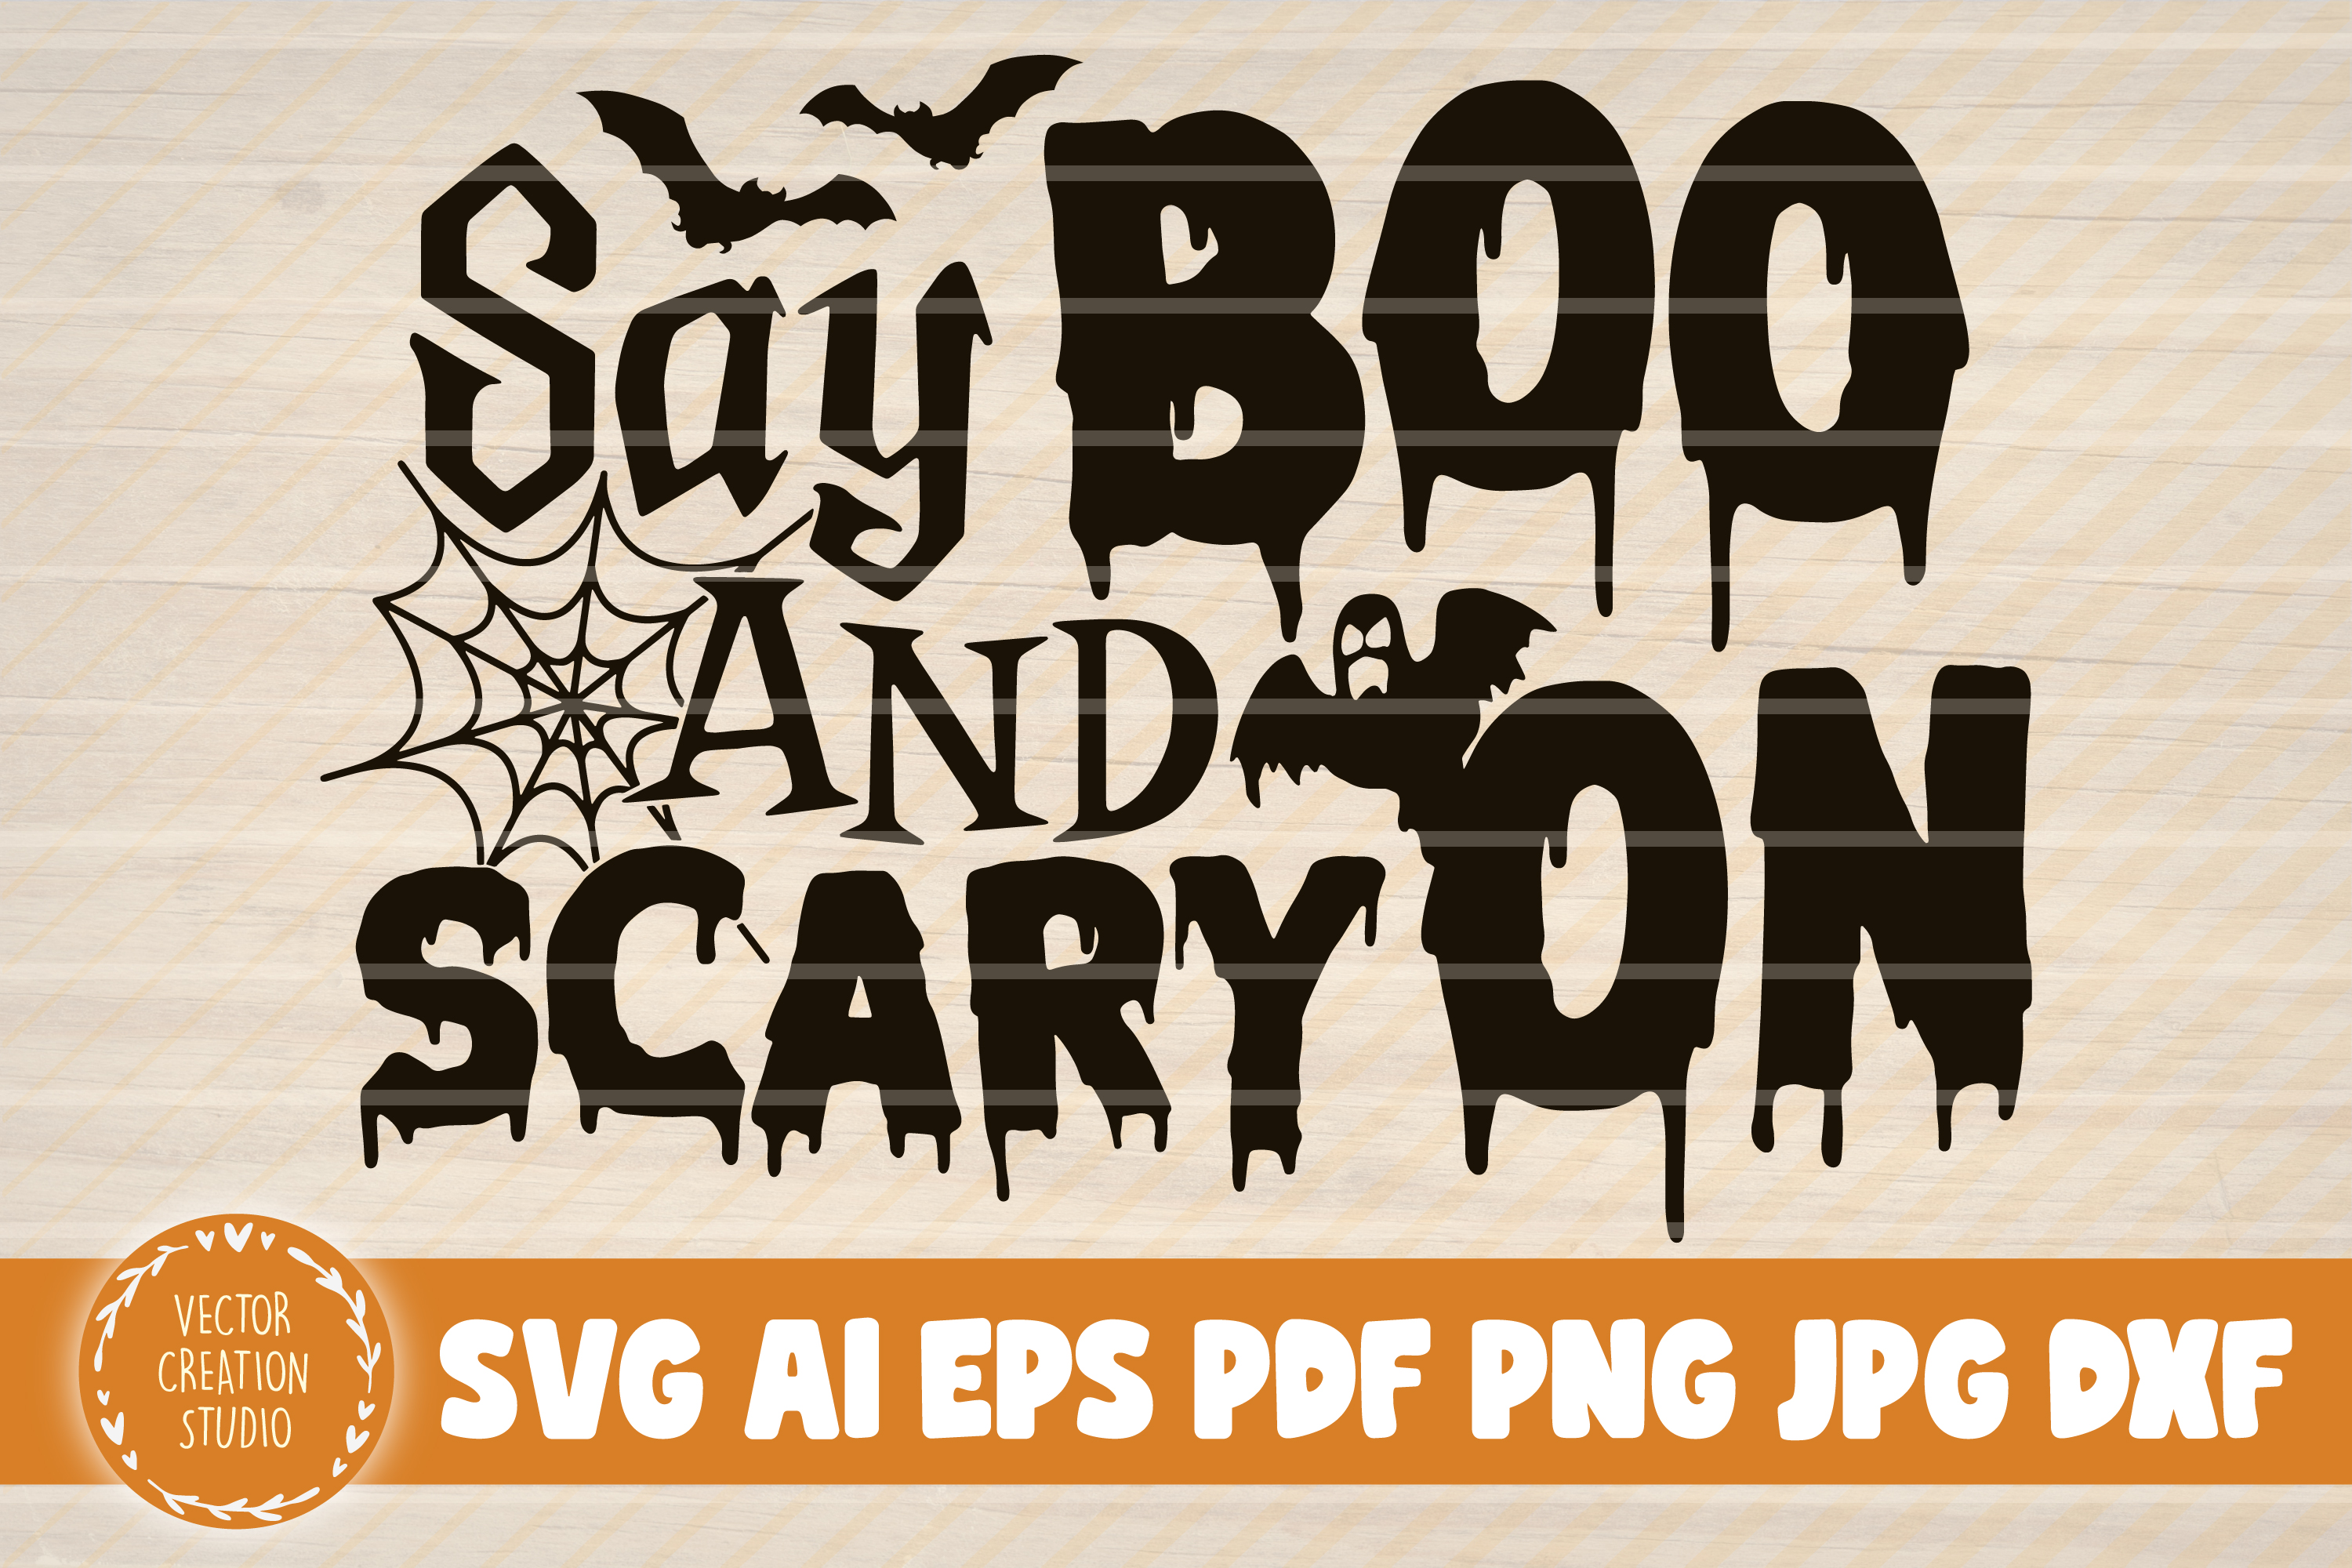 Say Boo And Scary On Halloween Svg Graphic By Vectorcreationstudio Creative Fabrica